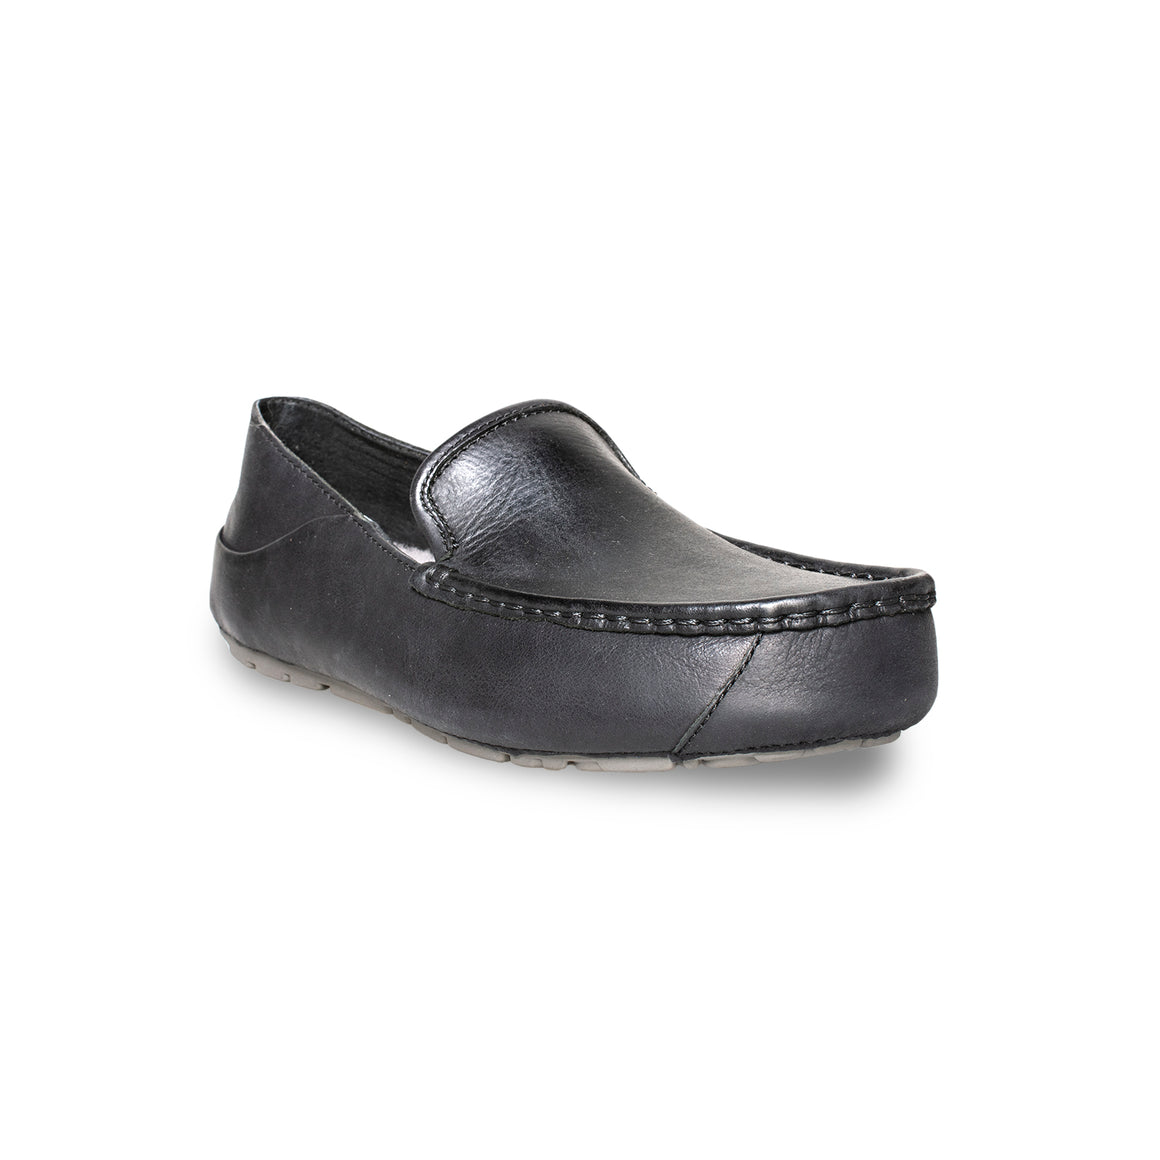 UGG Hunley Black Shoes - Men's